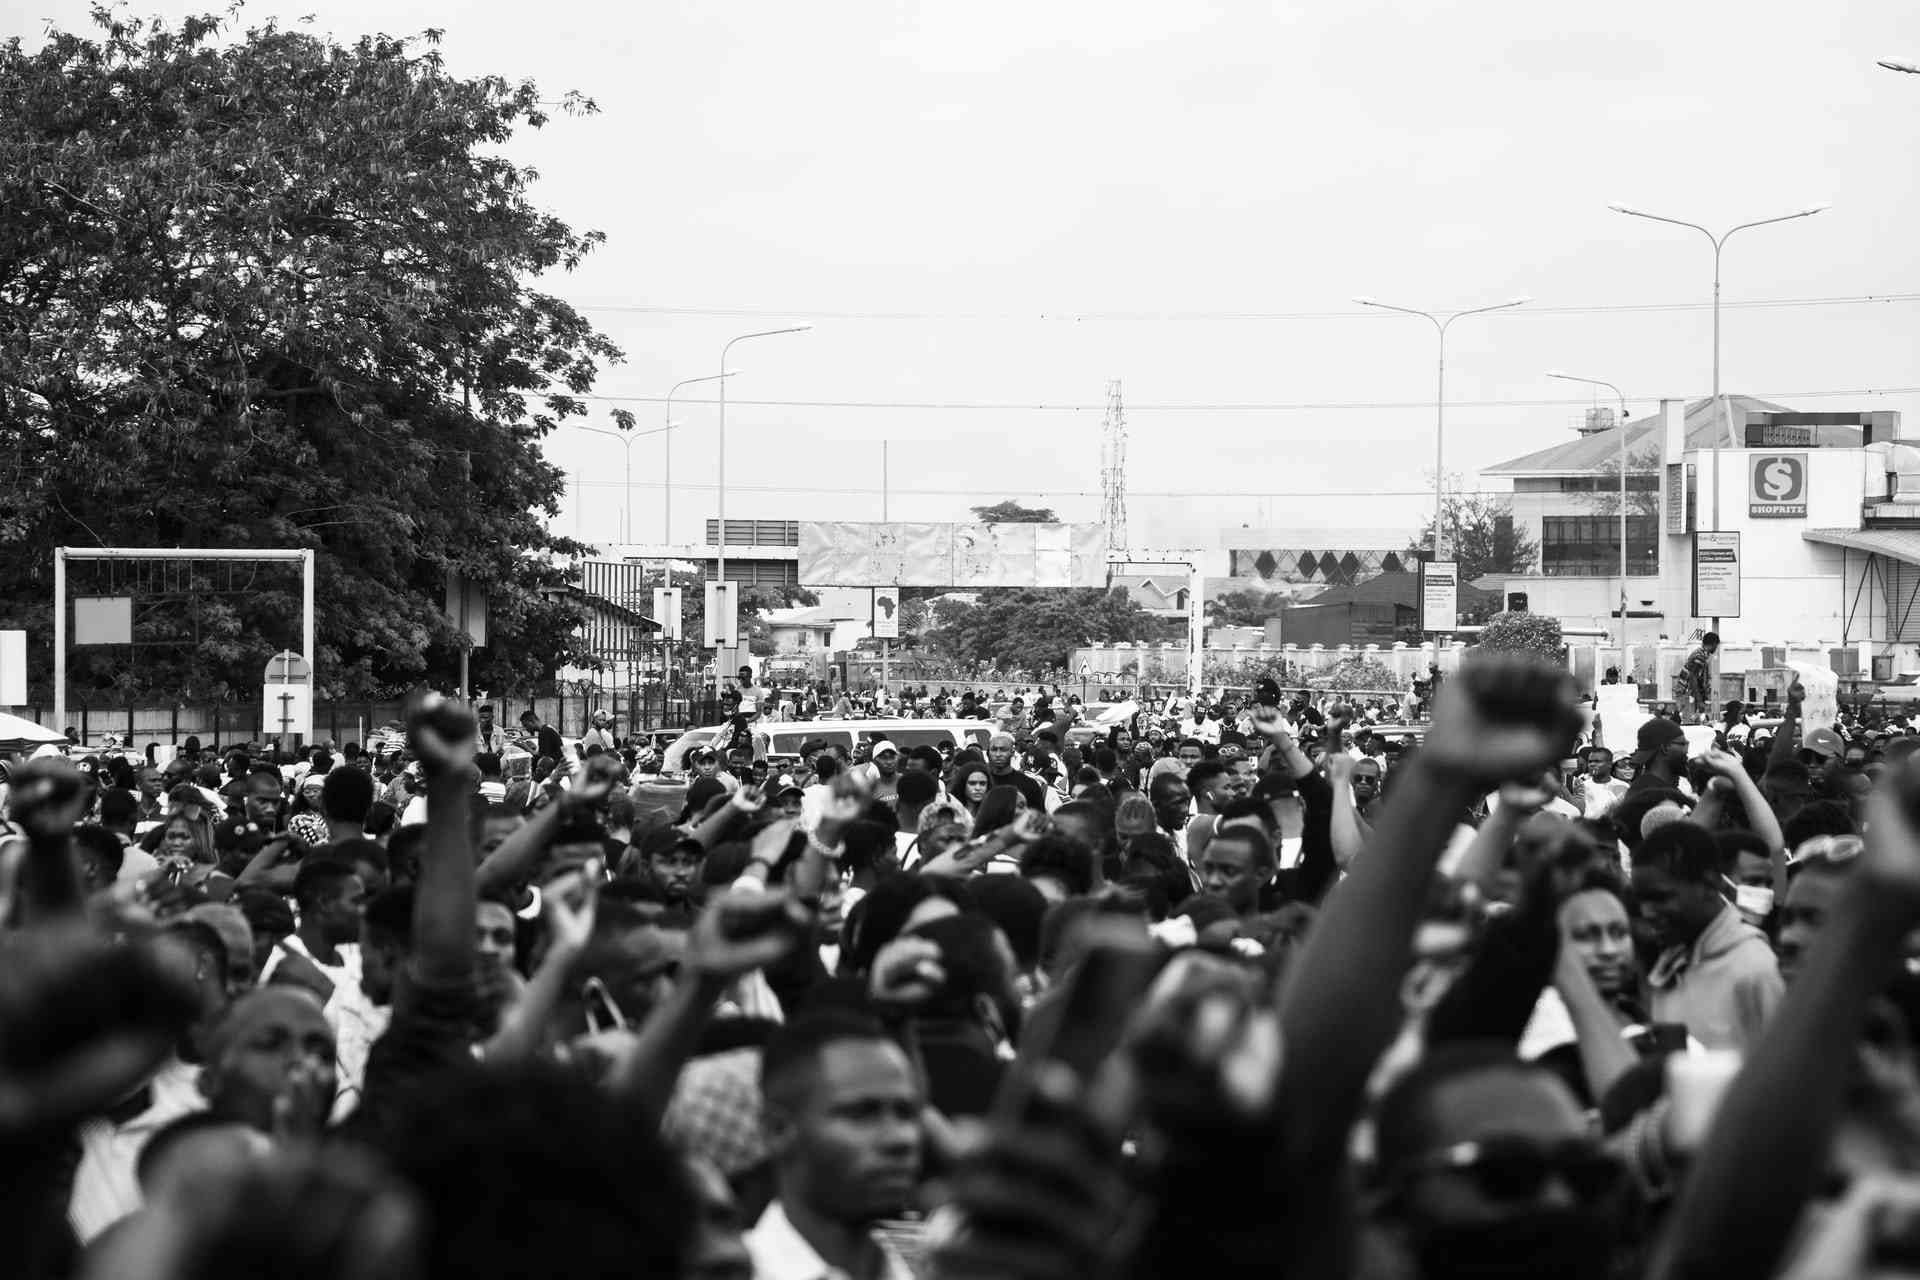 The Fate of the Nigerian Student